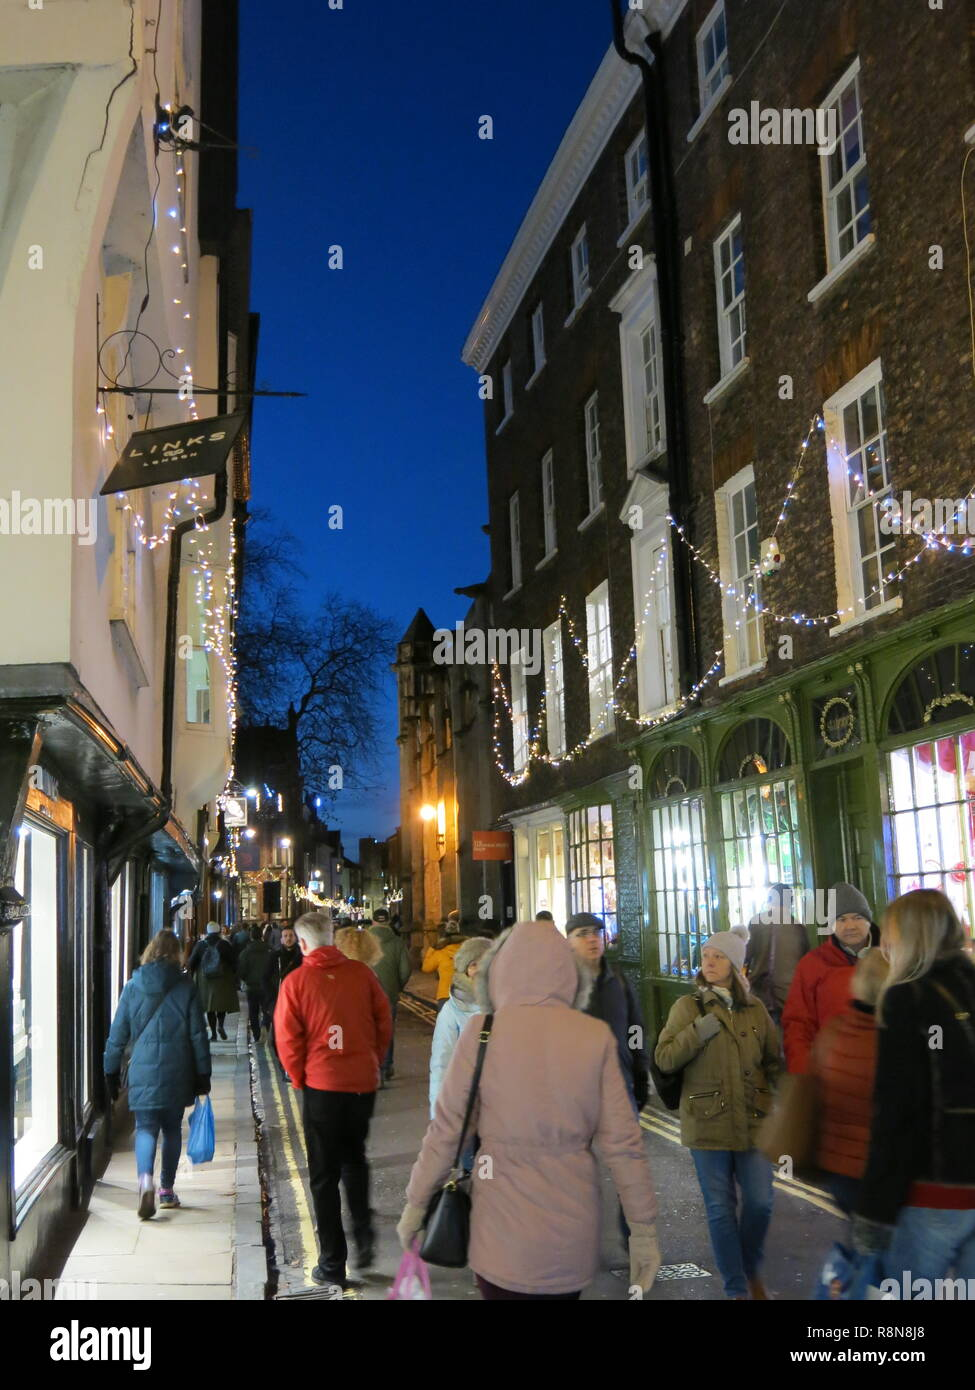 Christmas shoppers enjoy the festive atmosphere and street lights of the popular winding streets through The Shambles in York city centre; Dec 2018 - Stock Image